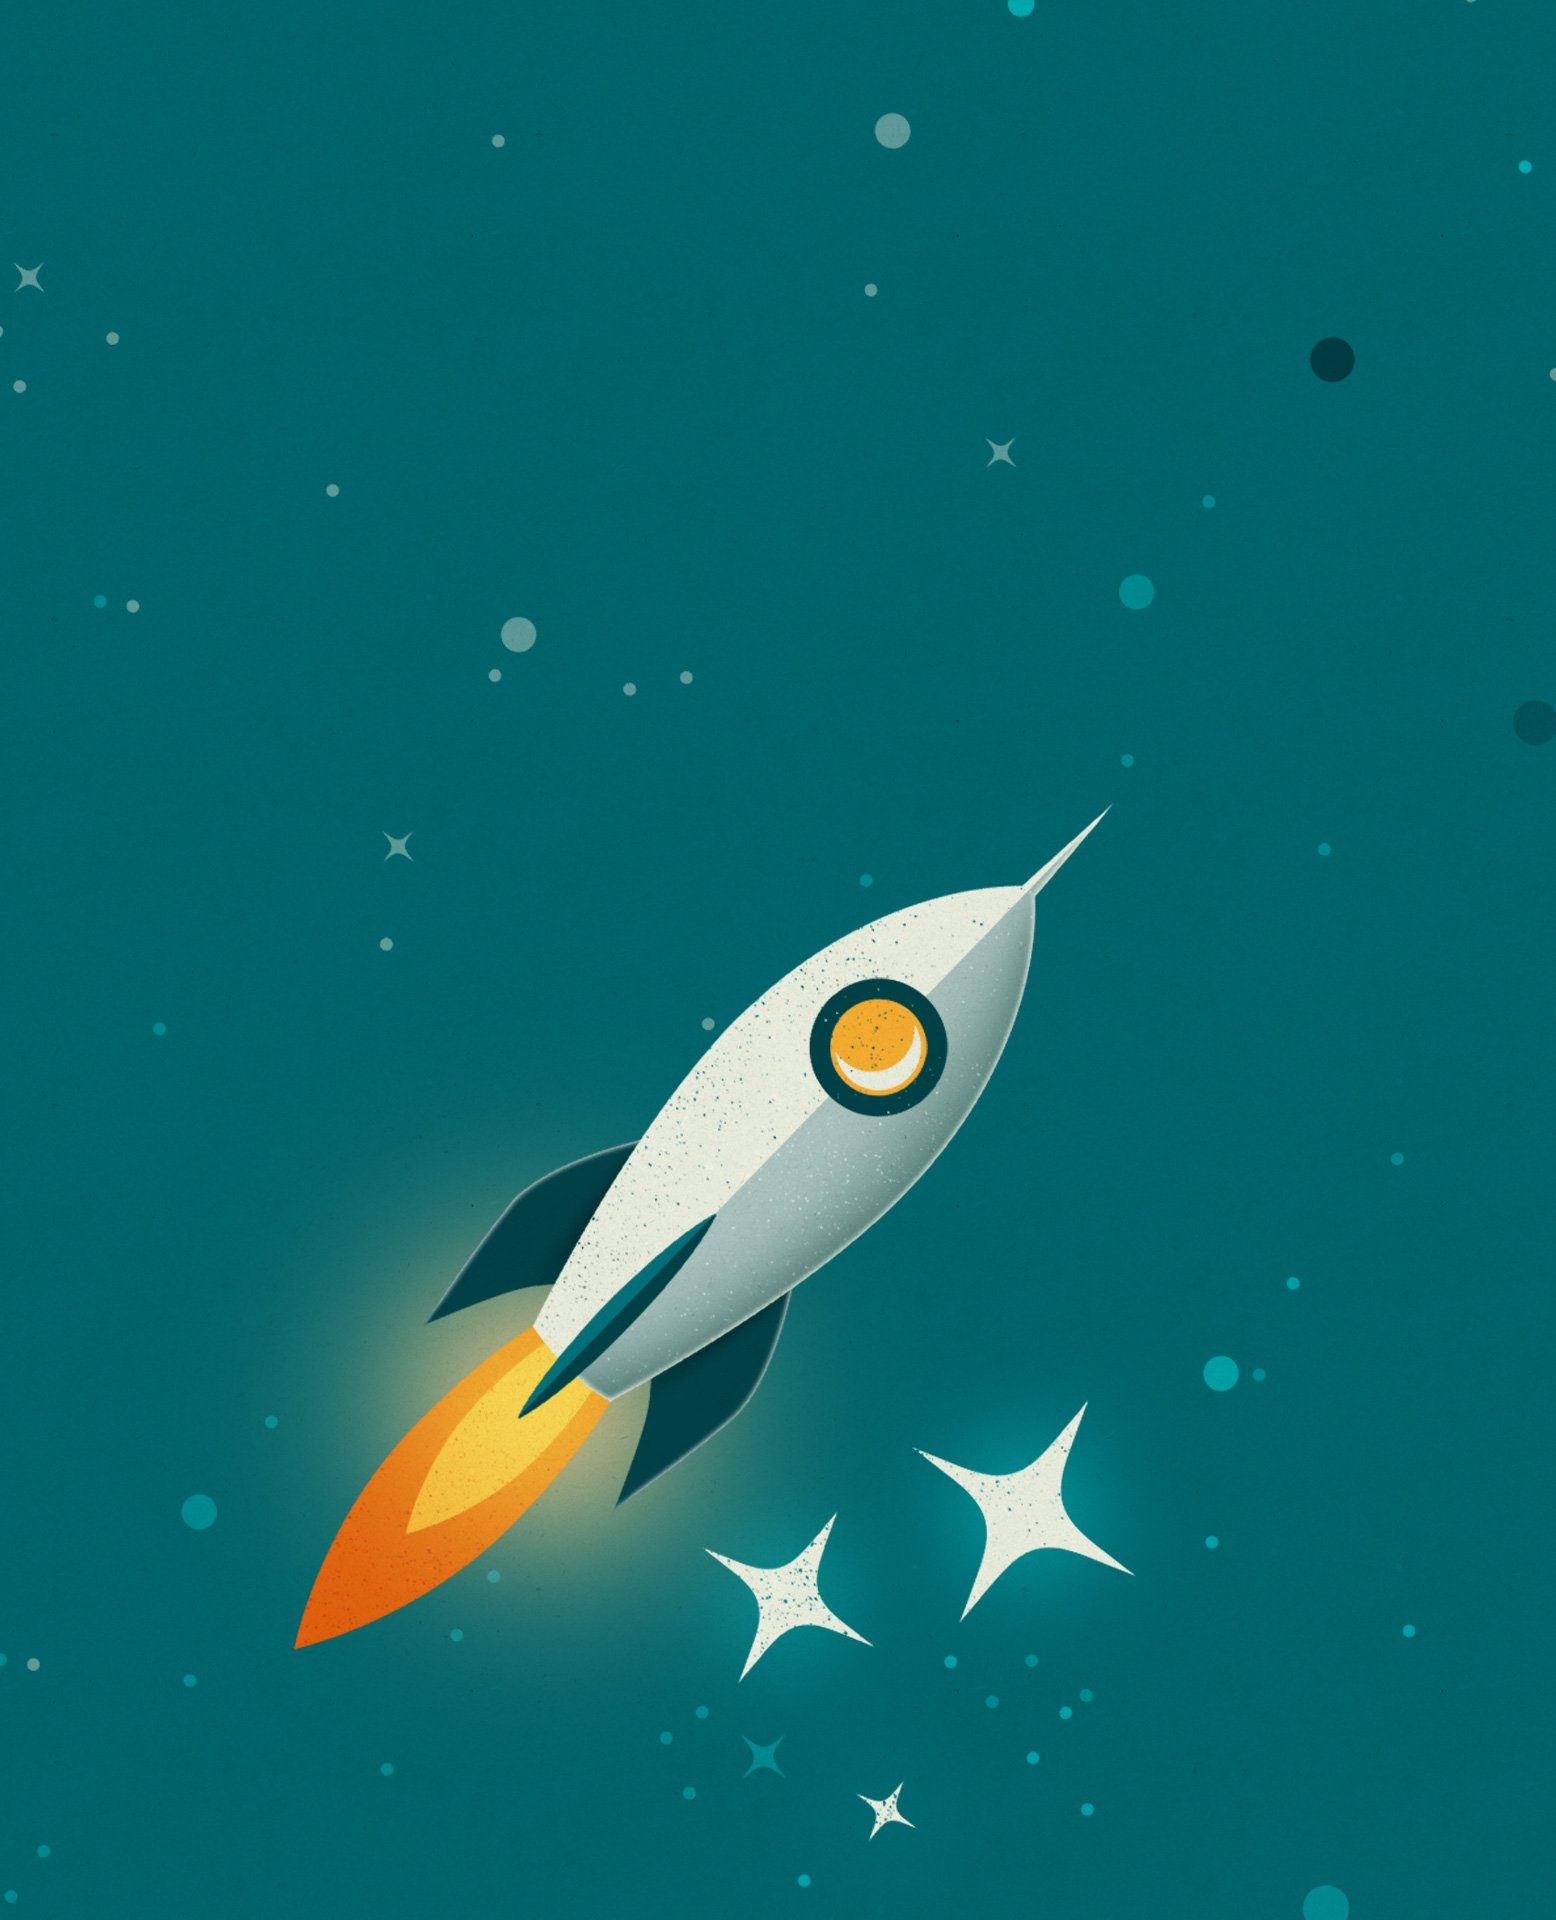 Rouse Limited Rocket in space illustration for tablet